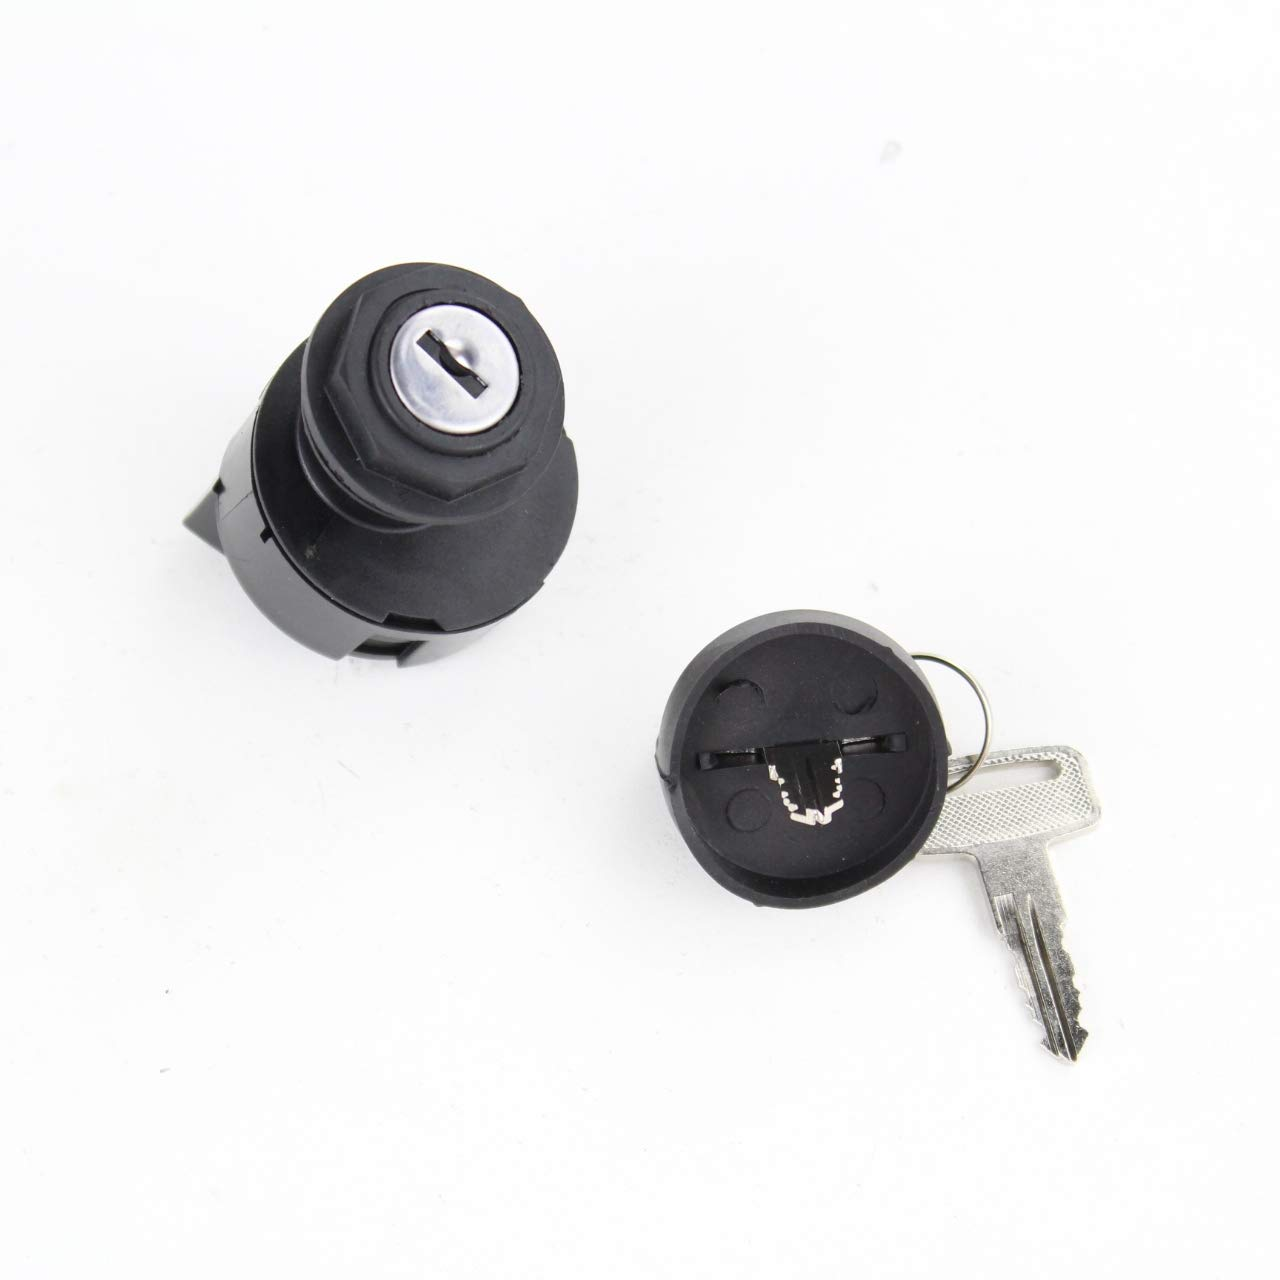 NICHE Ignition Switch Key Assembly for Polaris Sport 400L 1996-1998